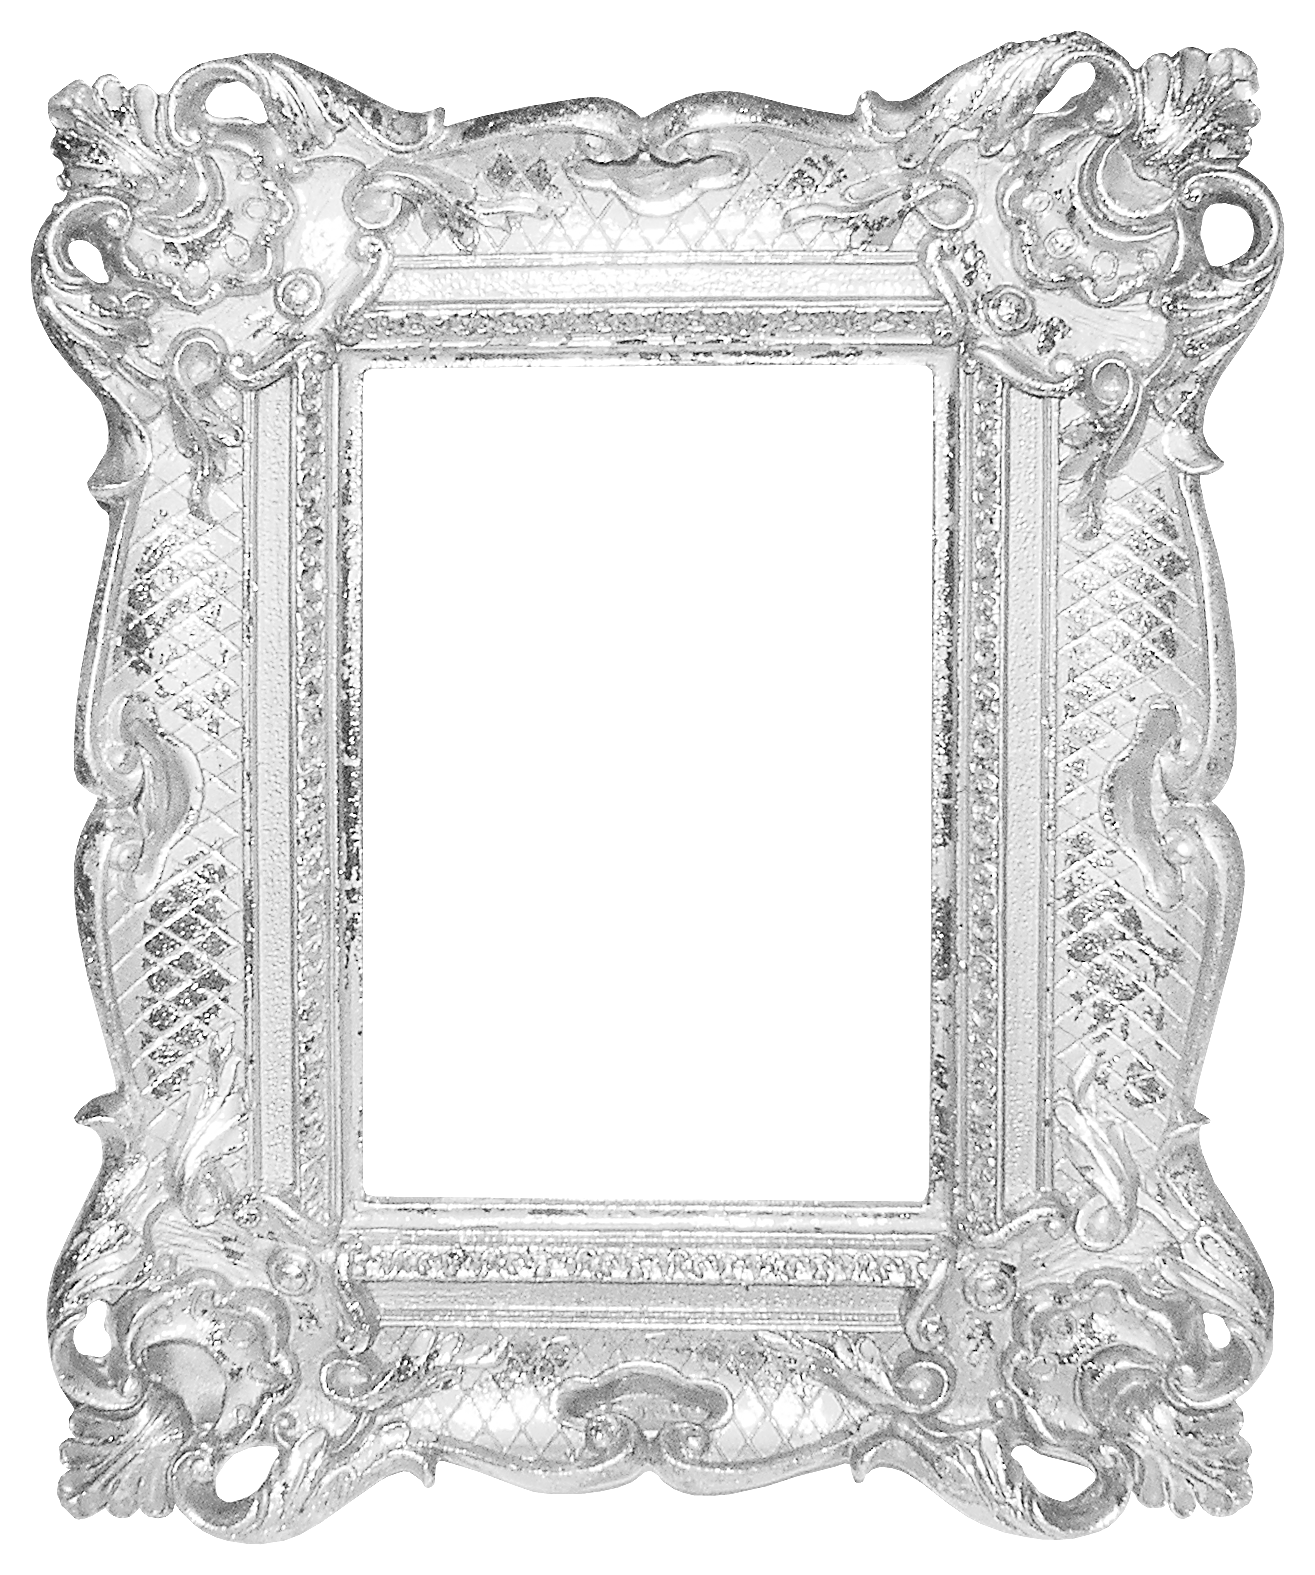 Silver frame png. Picture mirror pattern transprent